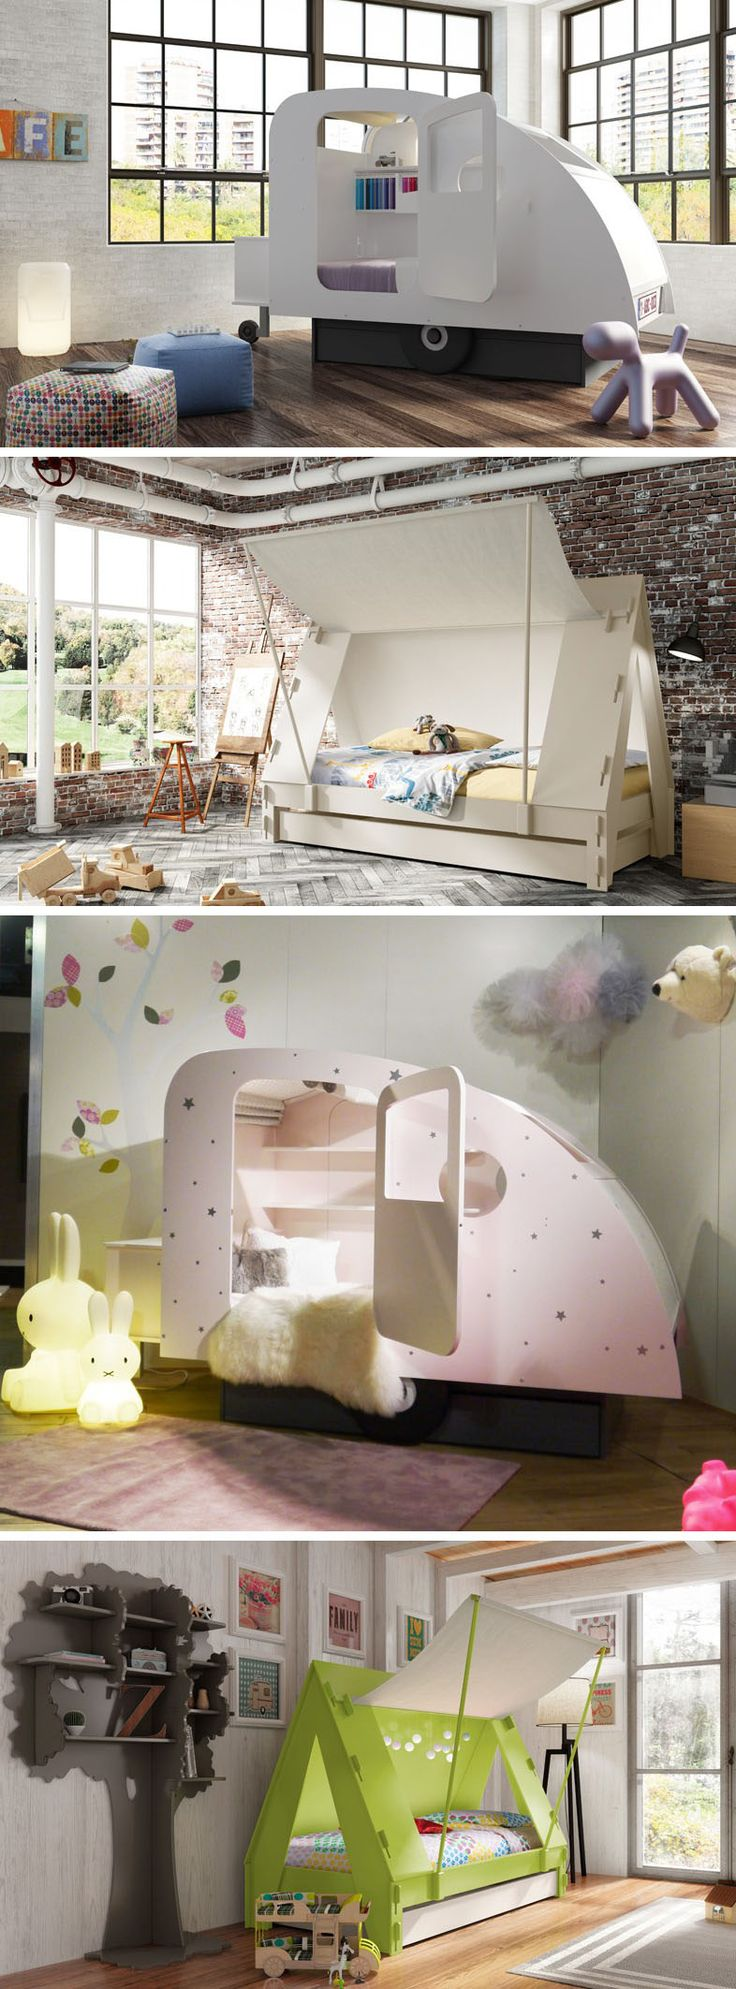 83 best images about Kinderzimmer on Pinterest | Deko, Ikea hacks ...